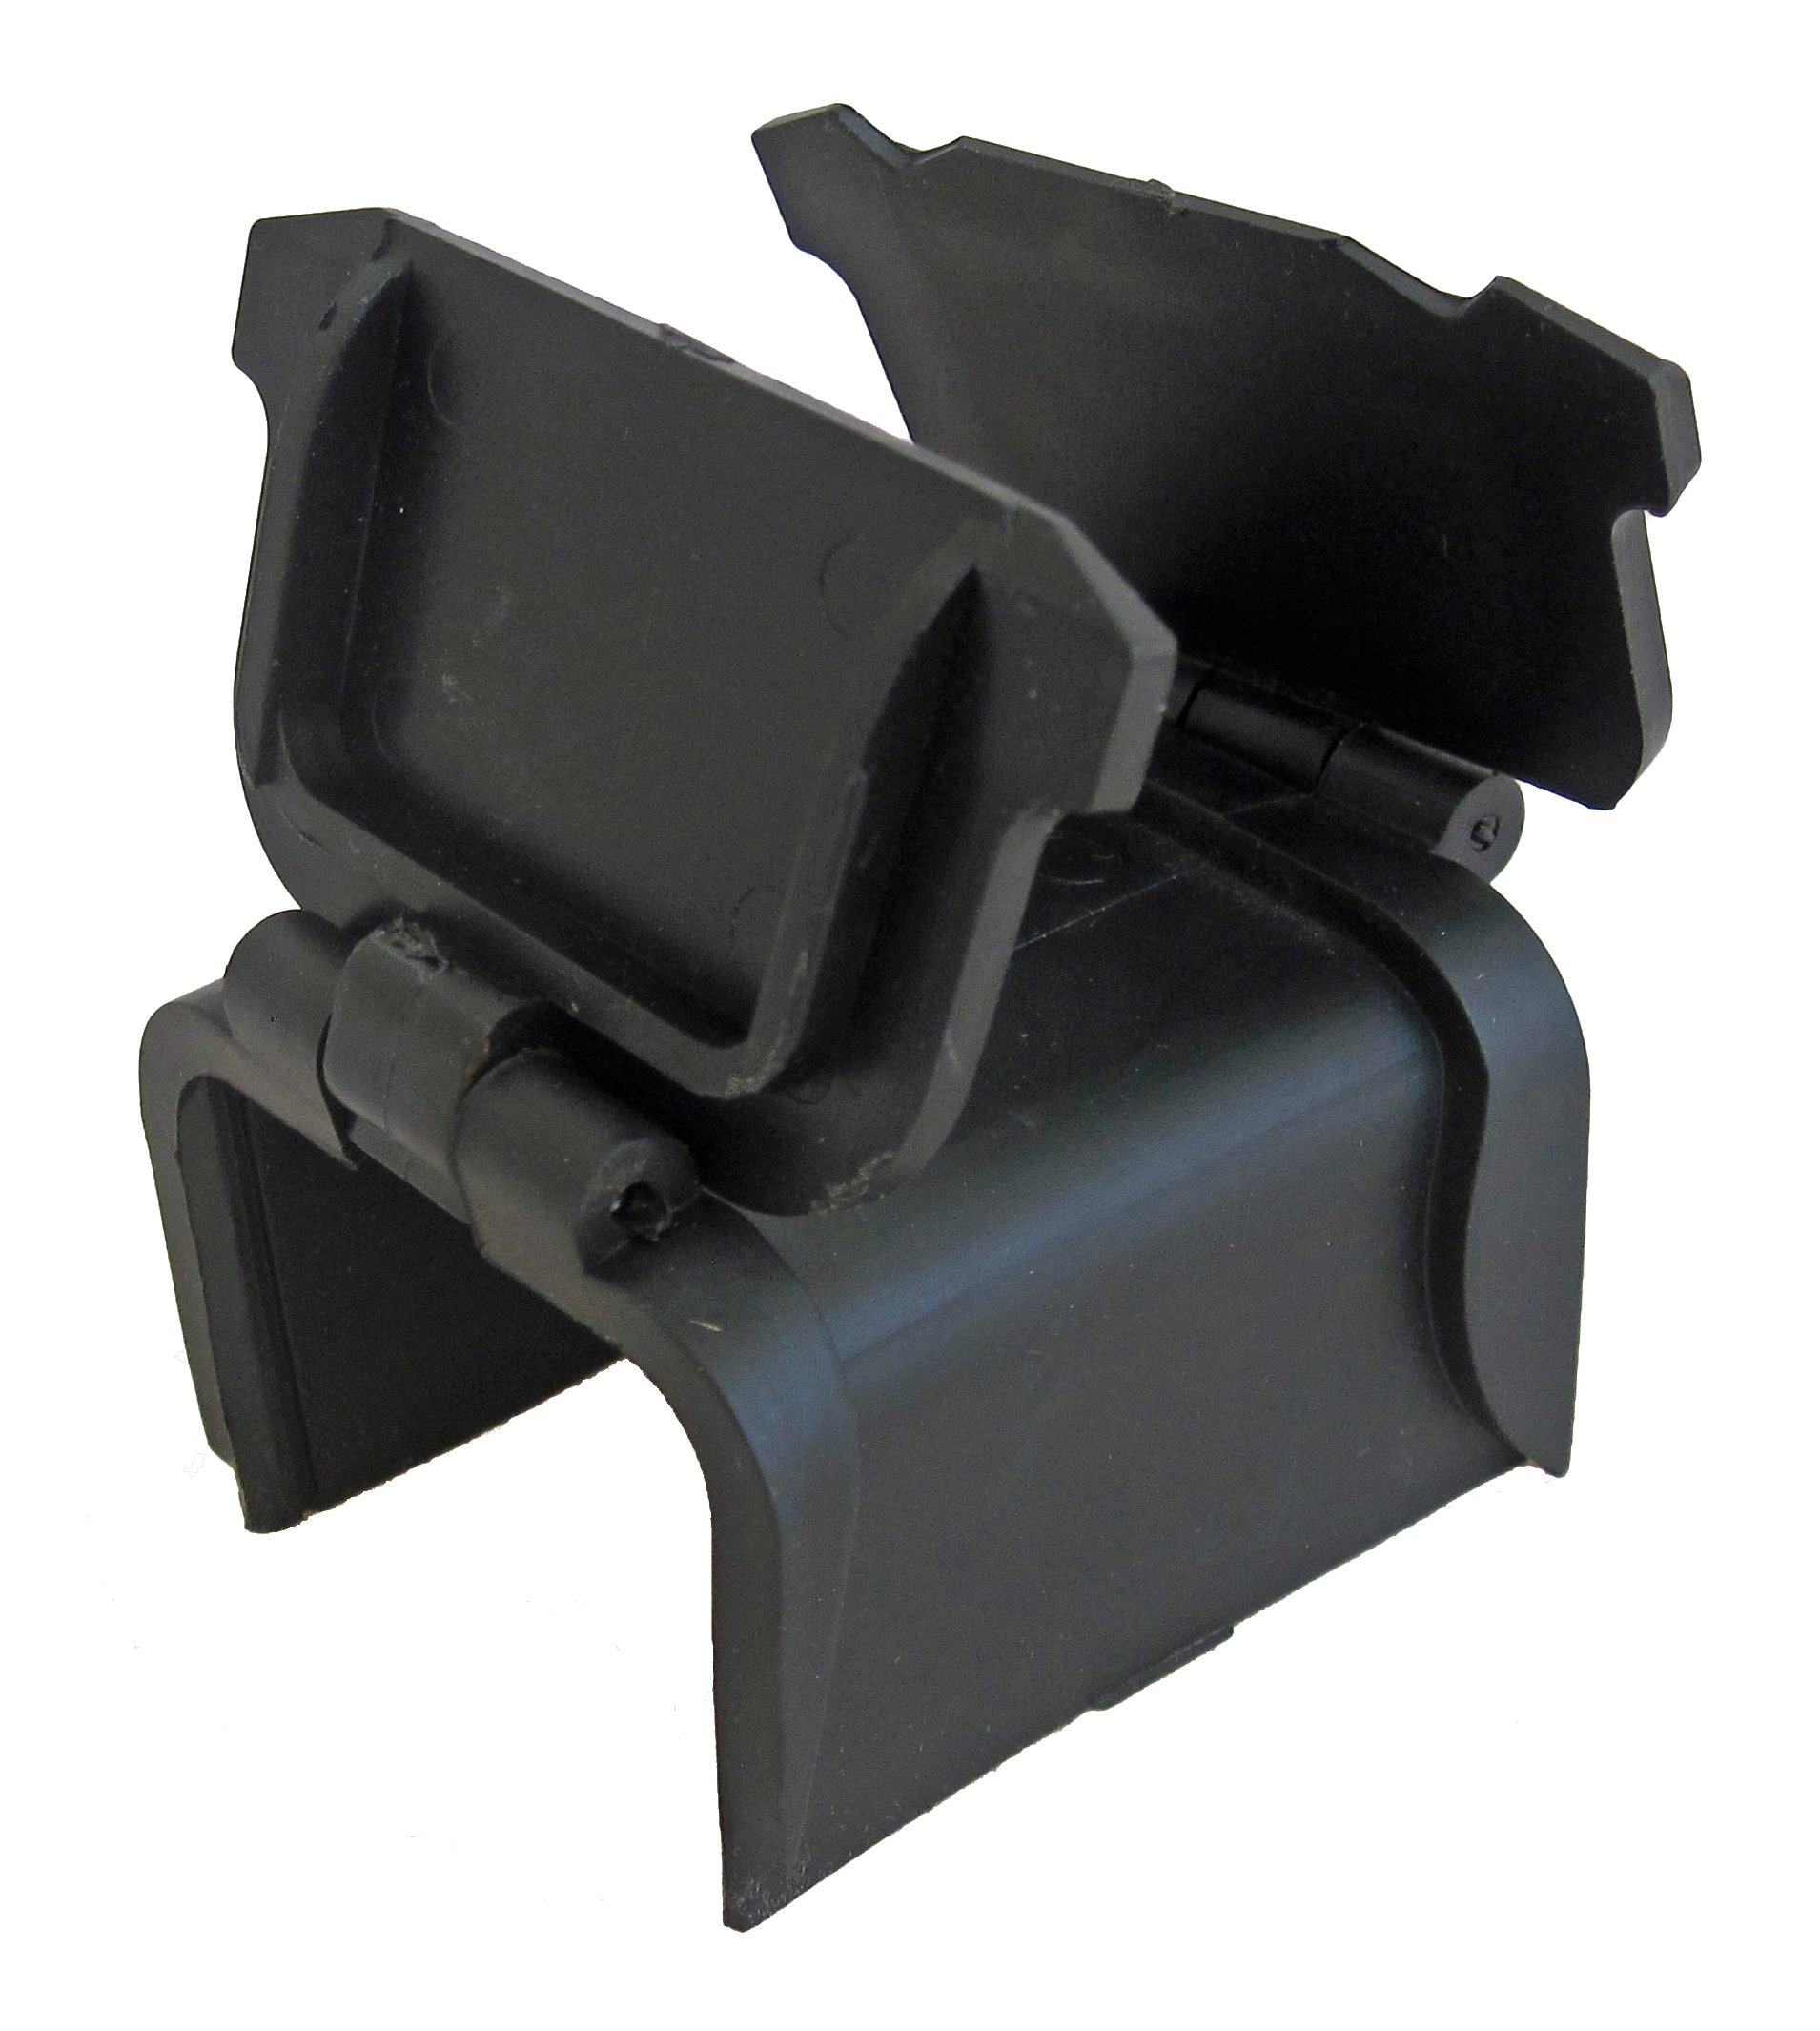 DLP Tactical Flip Cover Lens Protector compatible with EOtech 511 / 512 / 551 / 552